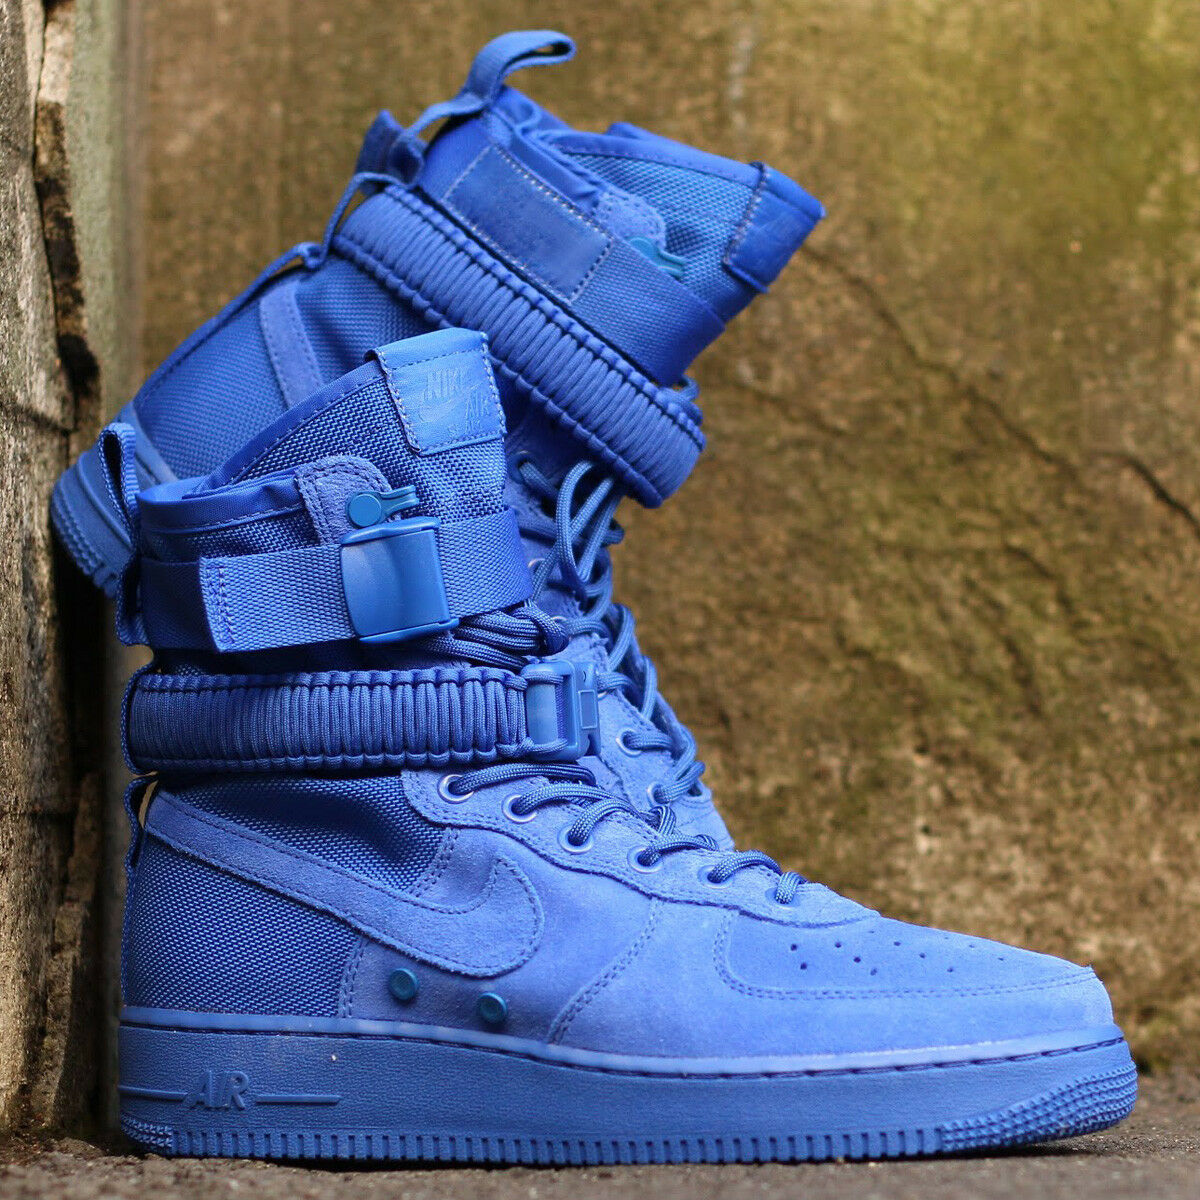 Nike Sf Air Force 1 Alte Gioco Reale blue Scamosciato men shoes 864024 UK 10.5